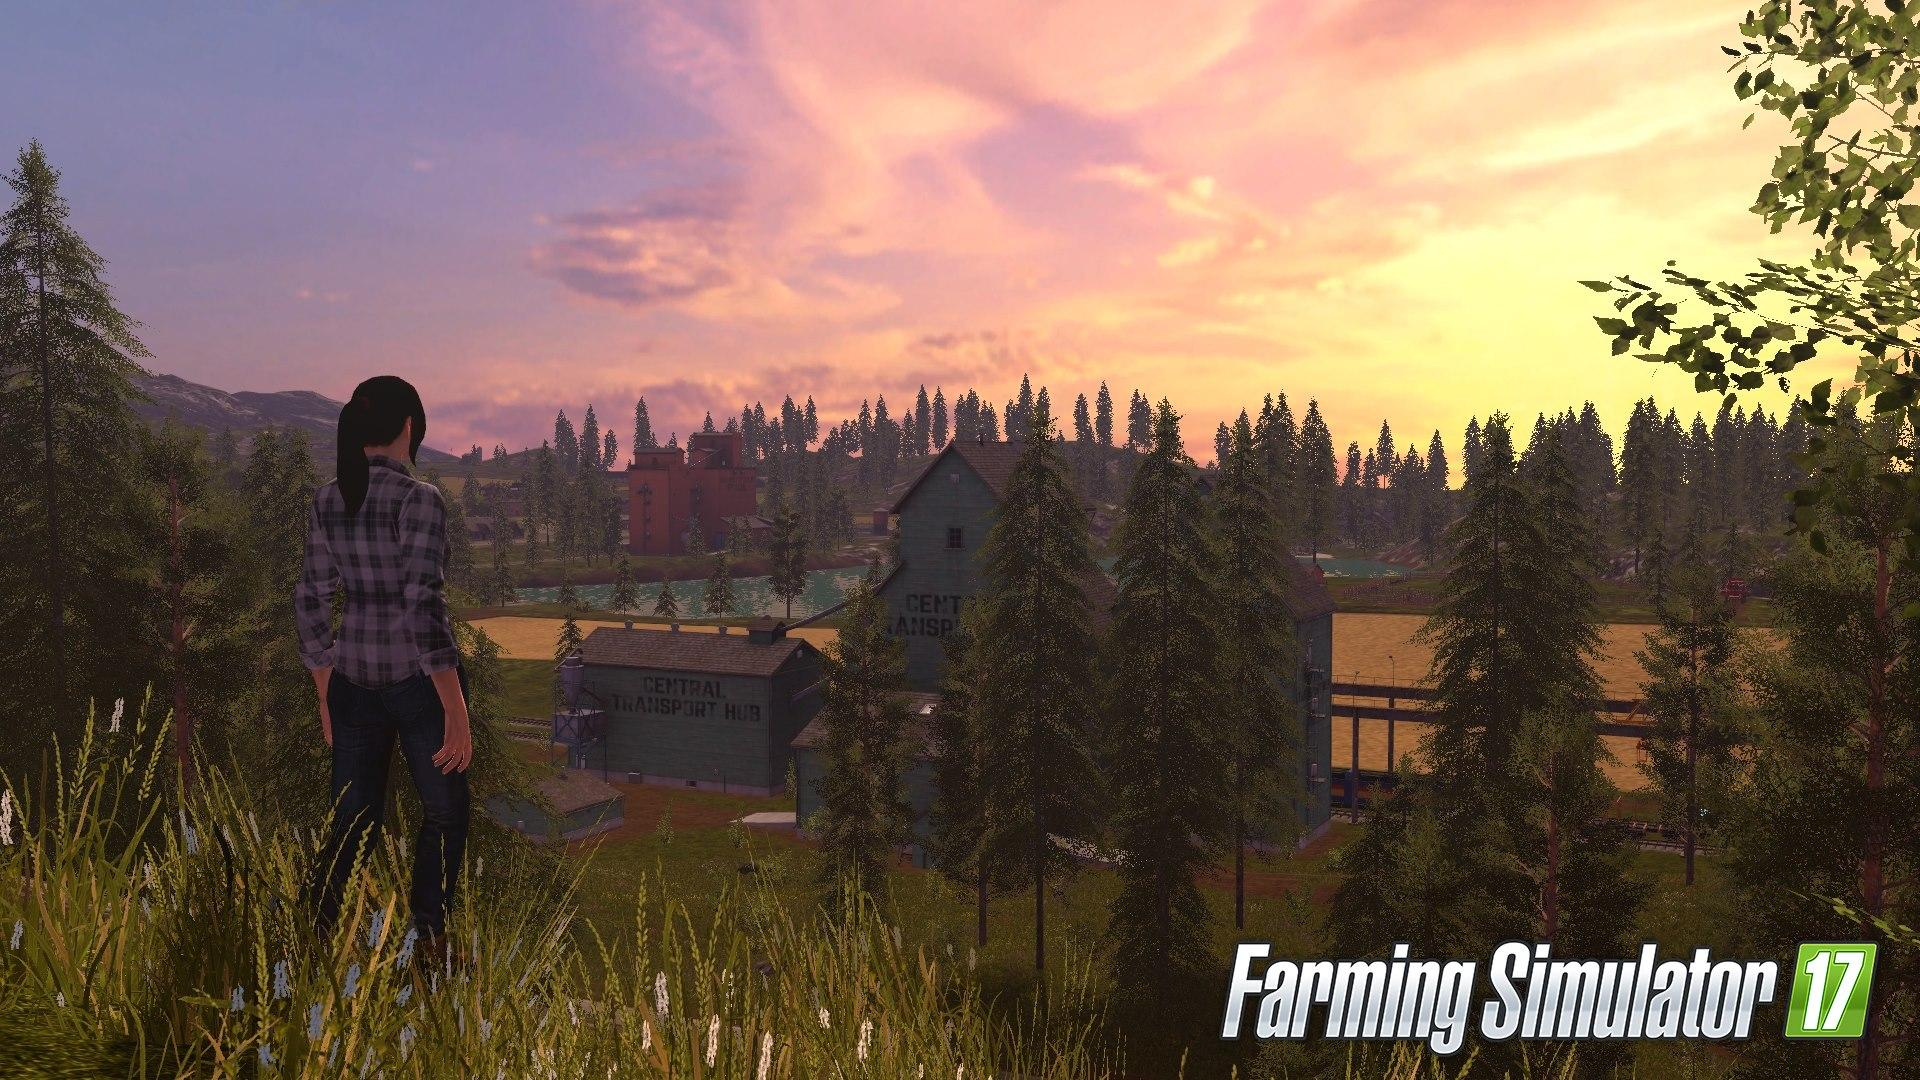 fs17-offers-the-option-to-play-as-a-female-farmer_4